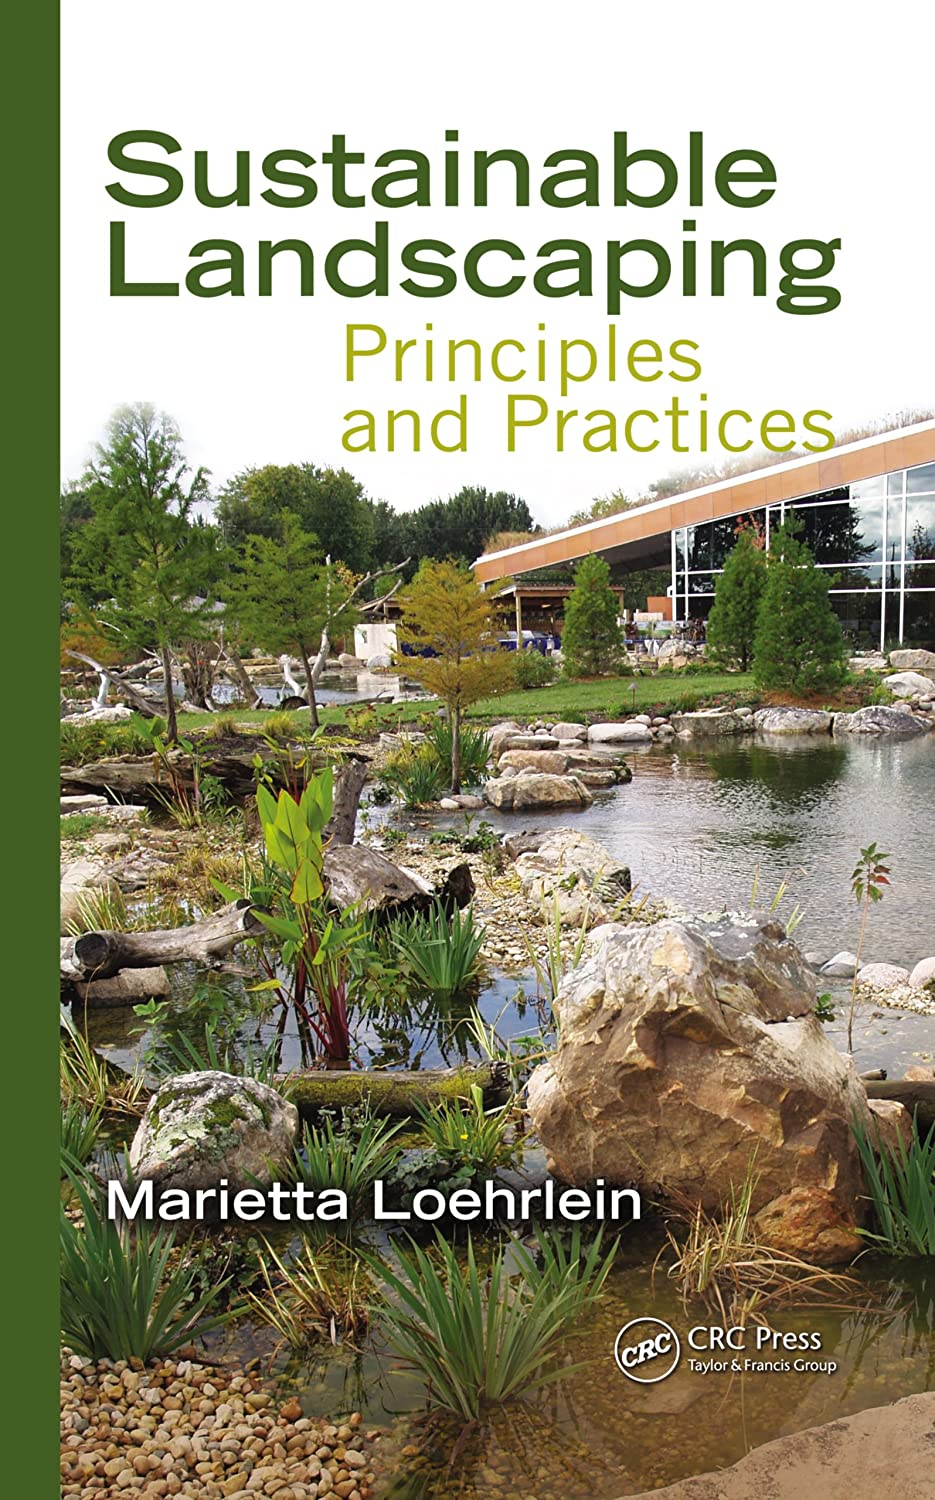 Sustainable Landscaping Principles And Practices 1 Marietta